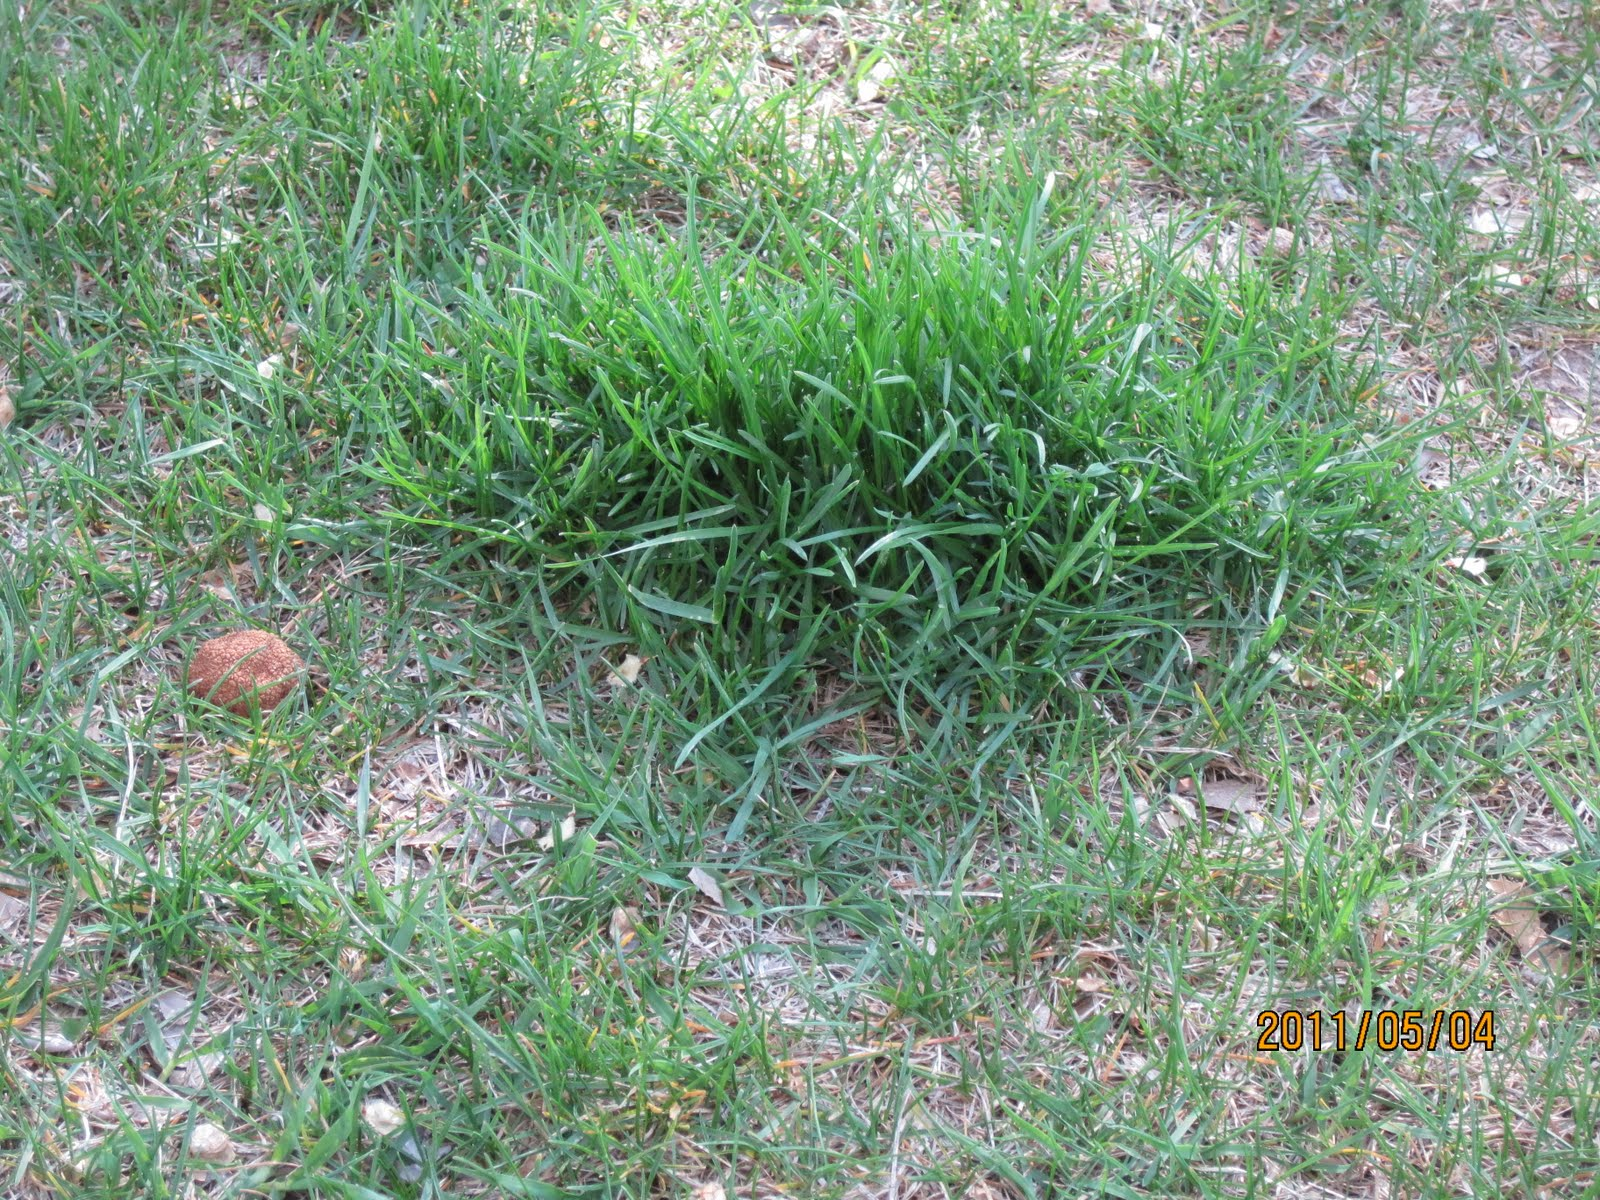 Swift 39 s gardening blog swift horticultural enterprises for How to fix dog urine spots on lawn